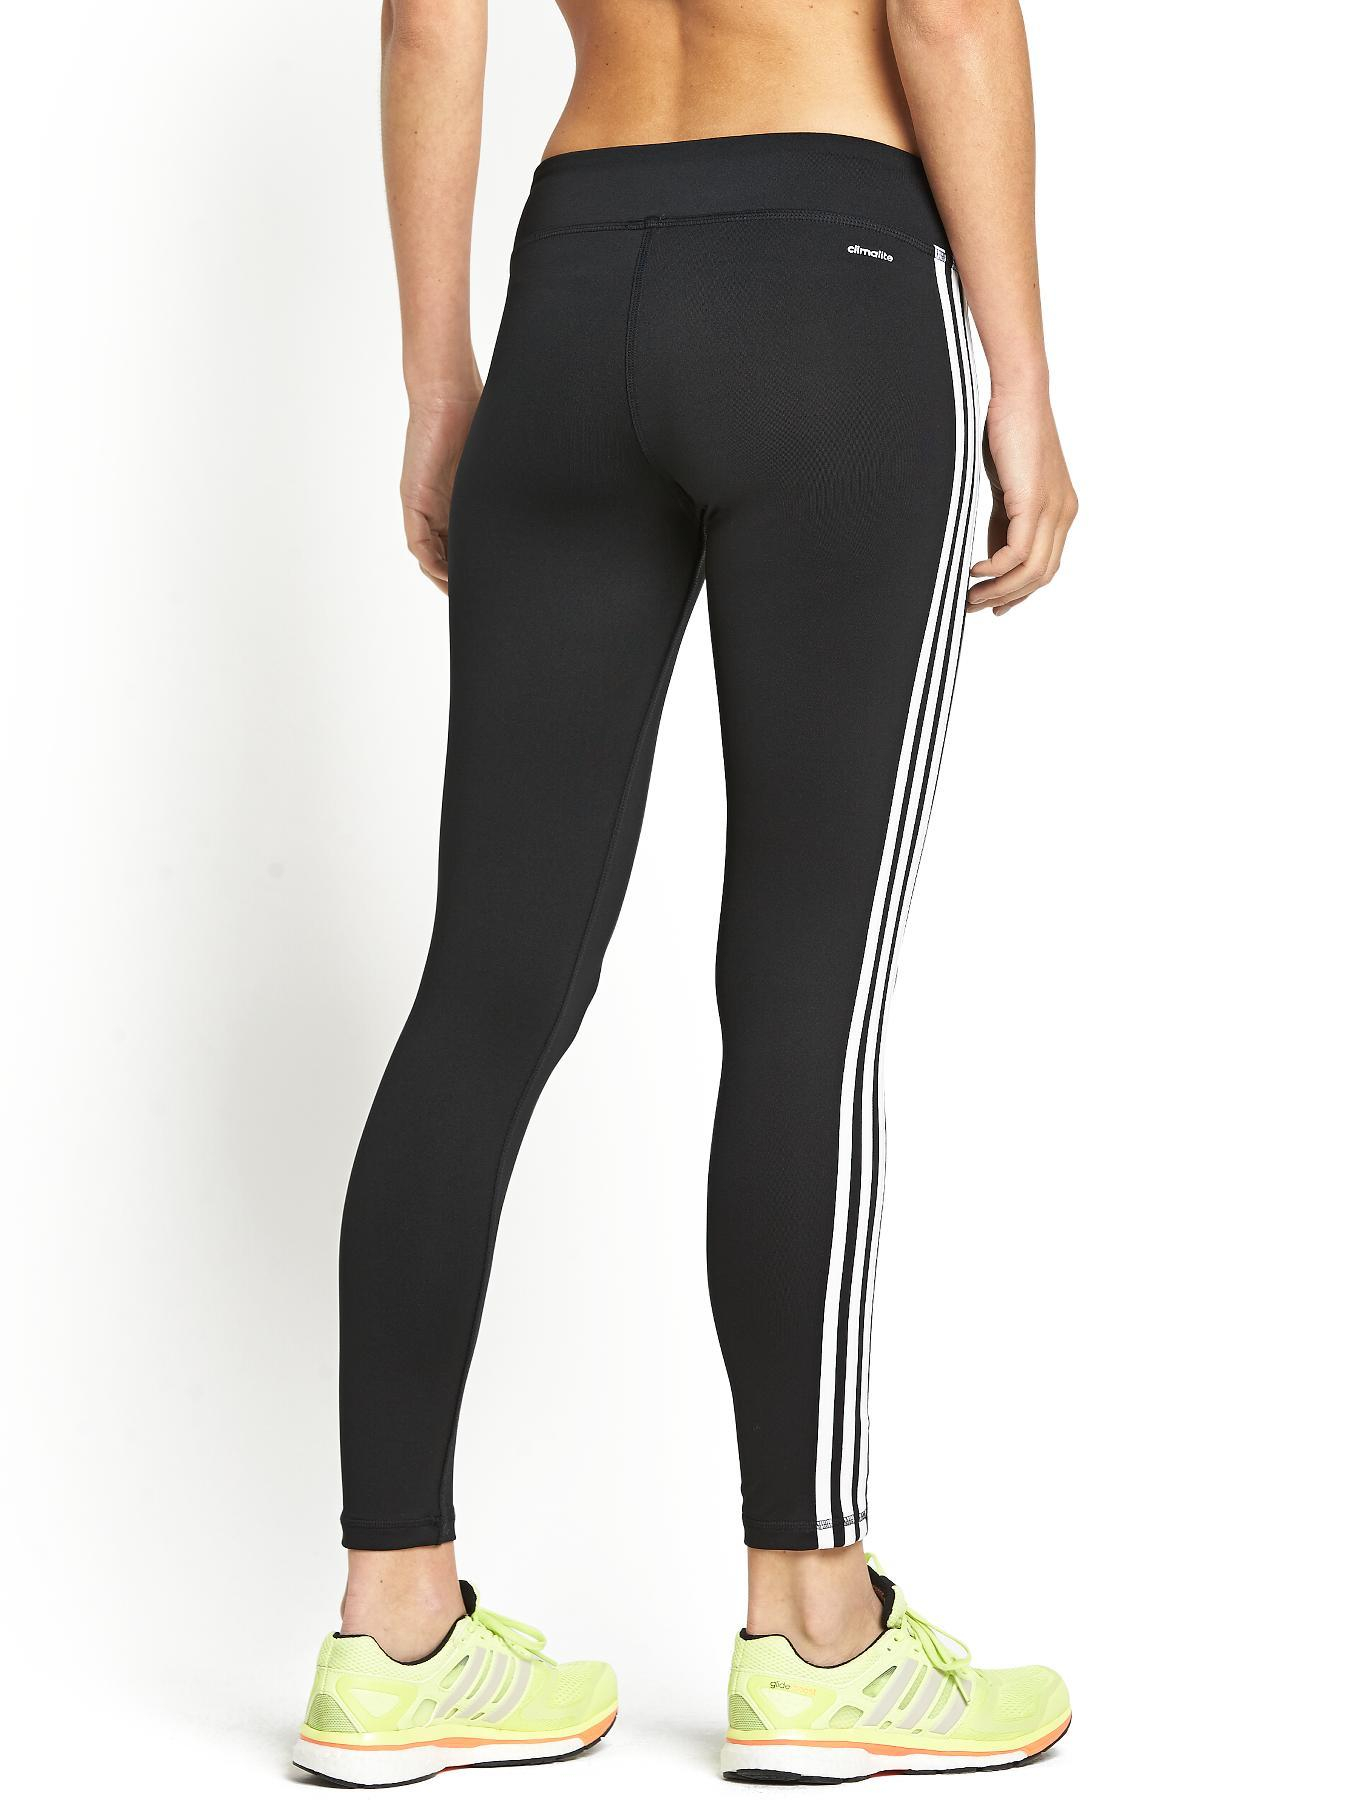 adidas performance mf 3s long tights. Black Bedroom Furniture Sets. Home Design Ideas